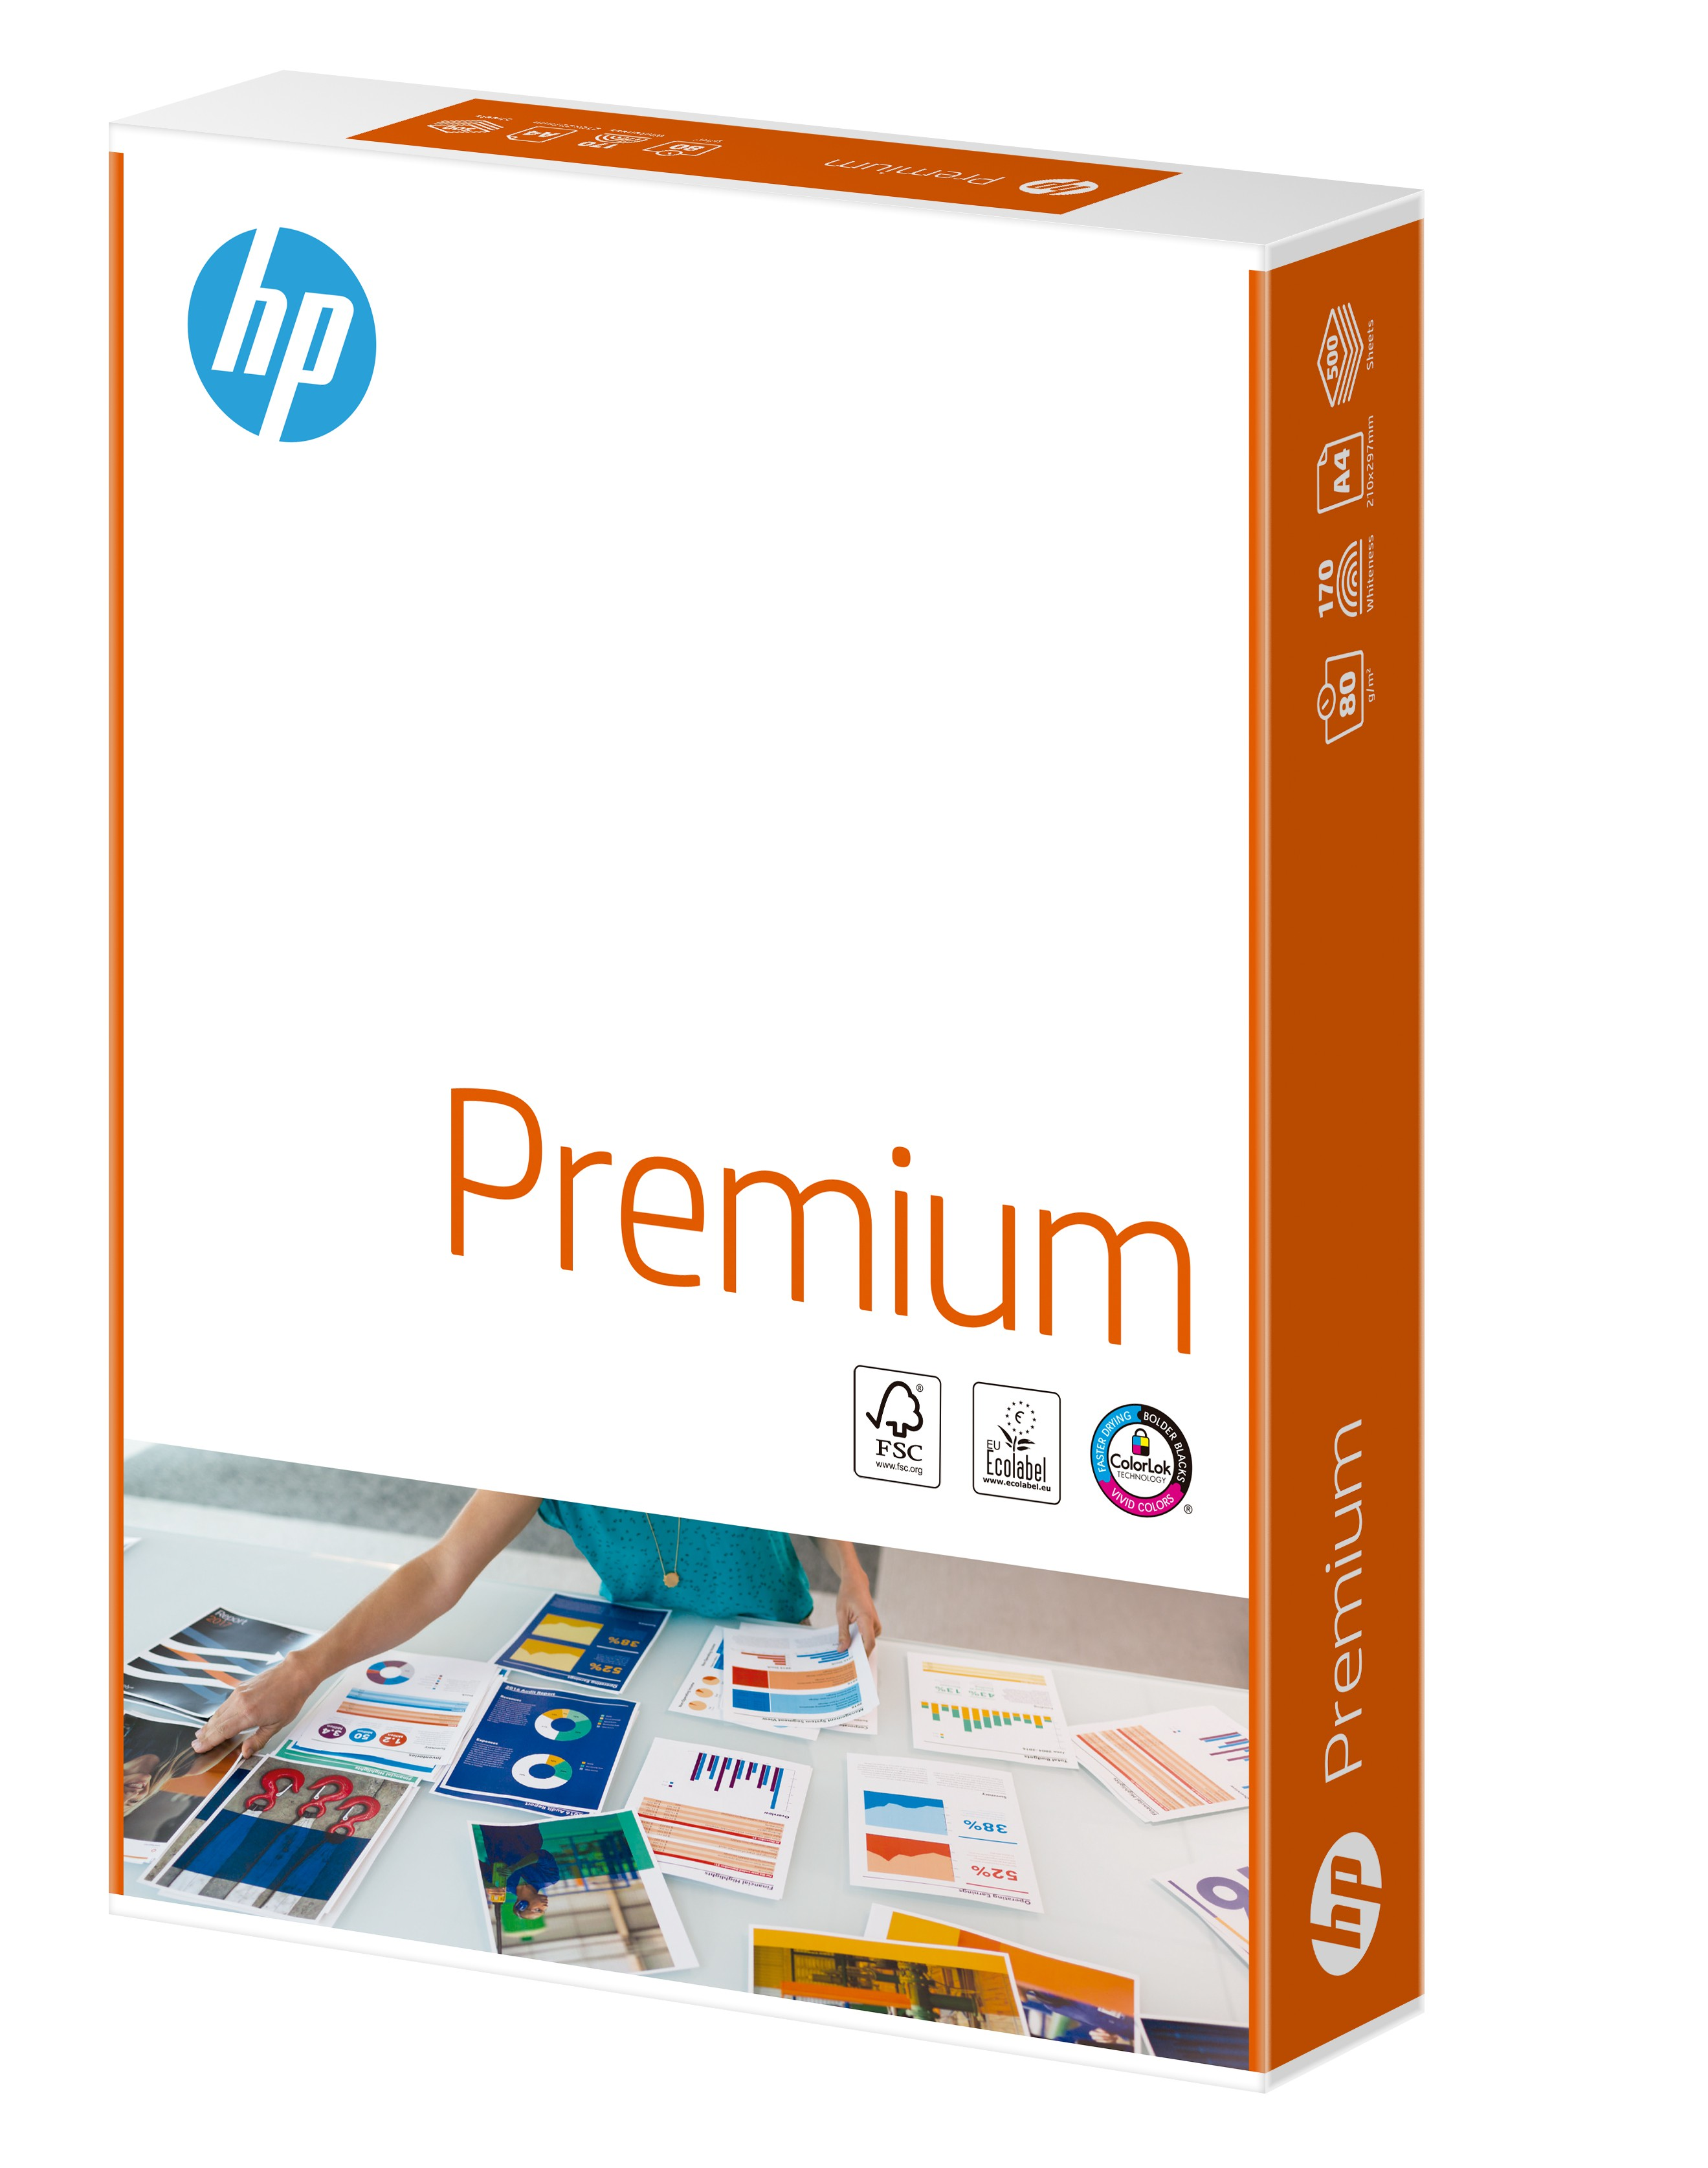 HP Premium Paper Multifunction 100gsm A4 White FSC Colorlok (Ream of 500 Sheets) CHP260